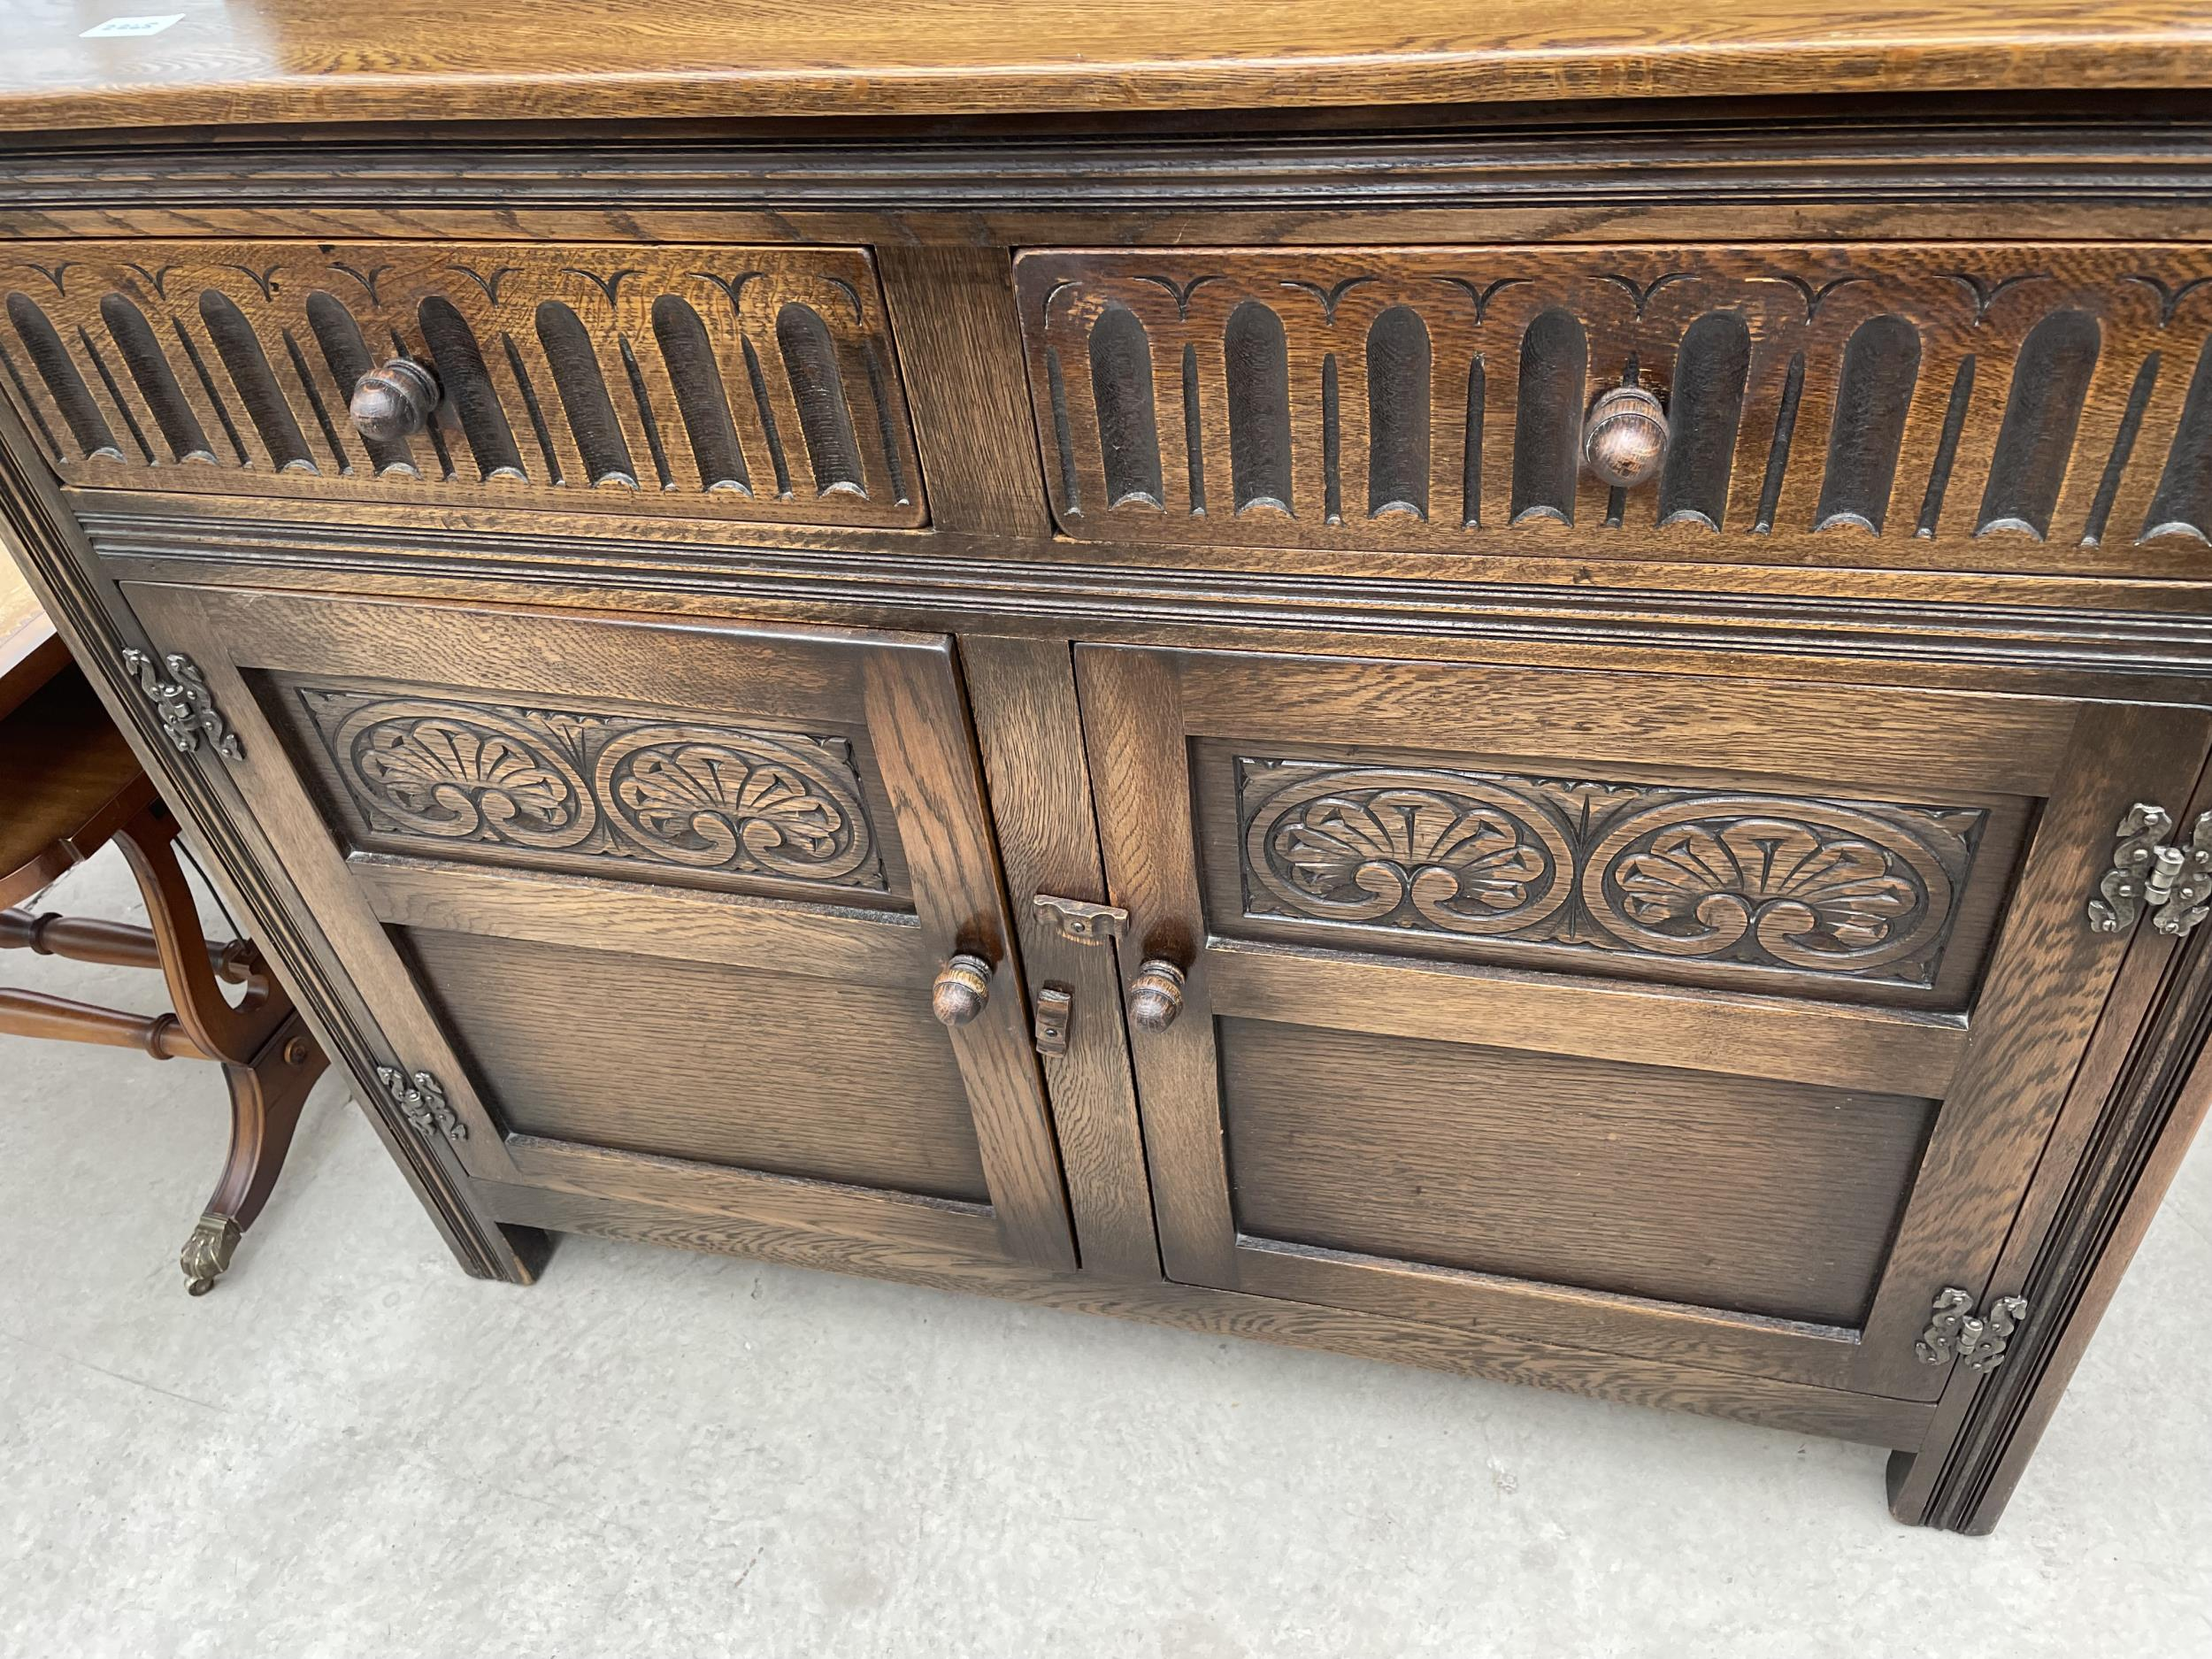 """AN OAK OLD CHARM STYLE DRESSER WITH PLATE RACK 42"""" WIDE - Image 4 of 4"""